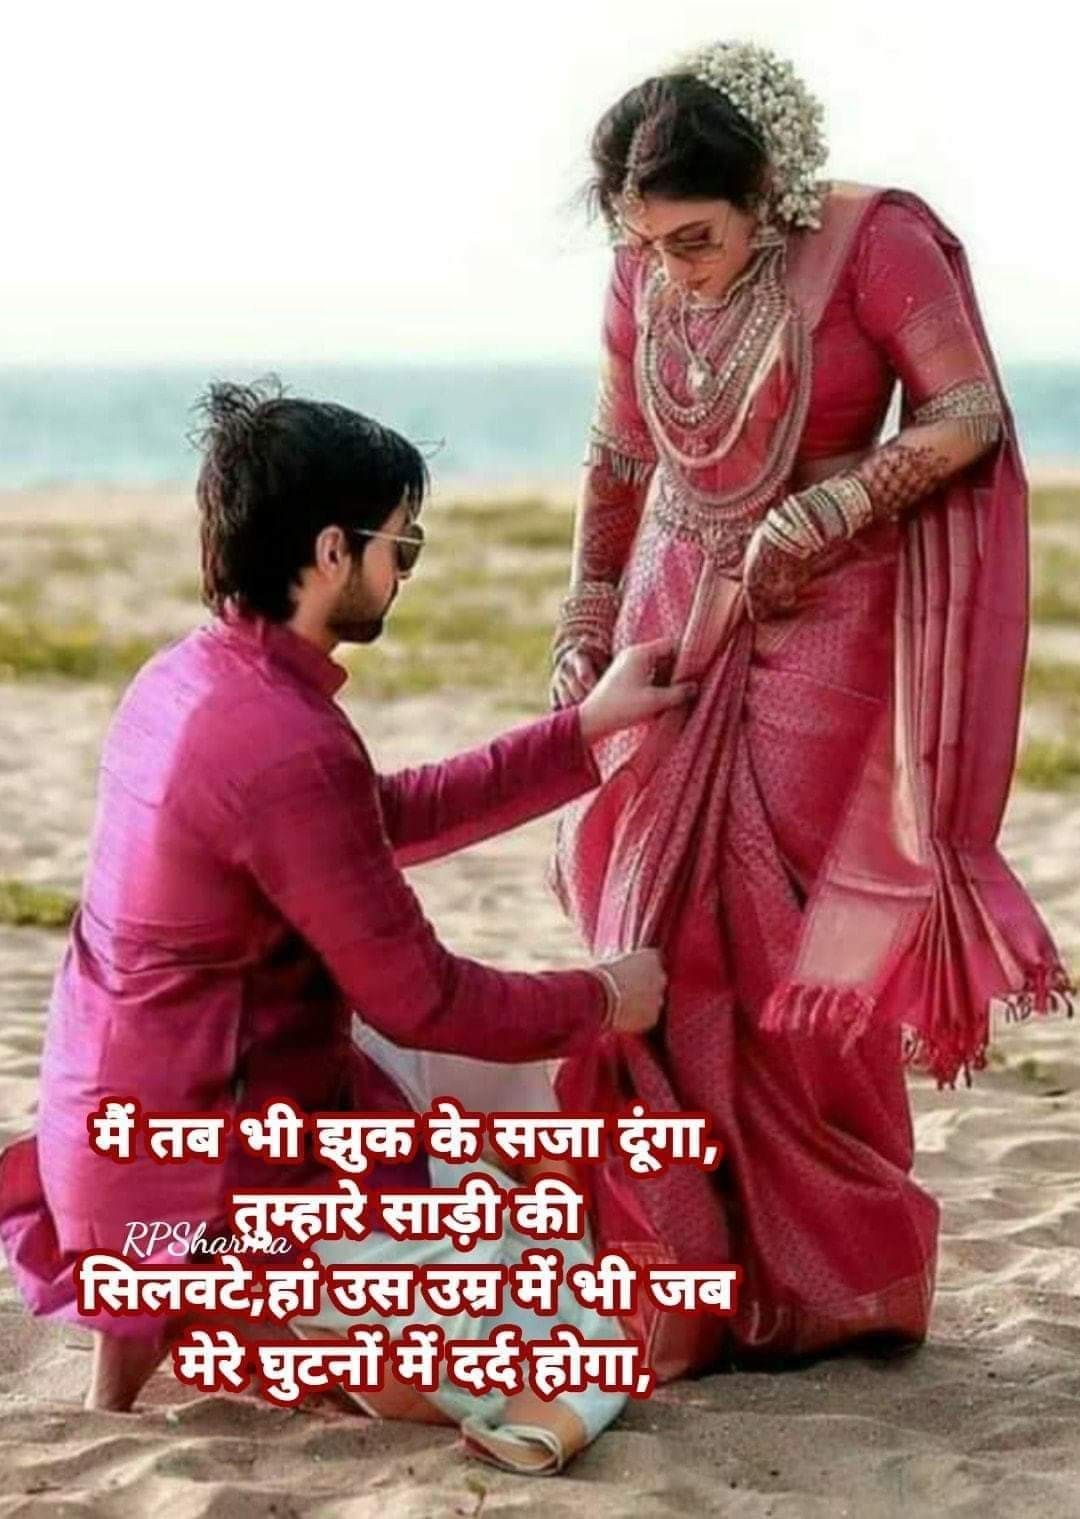 Sad Quotes For Relationship In Hindi